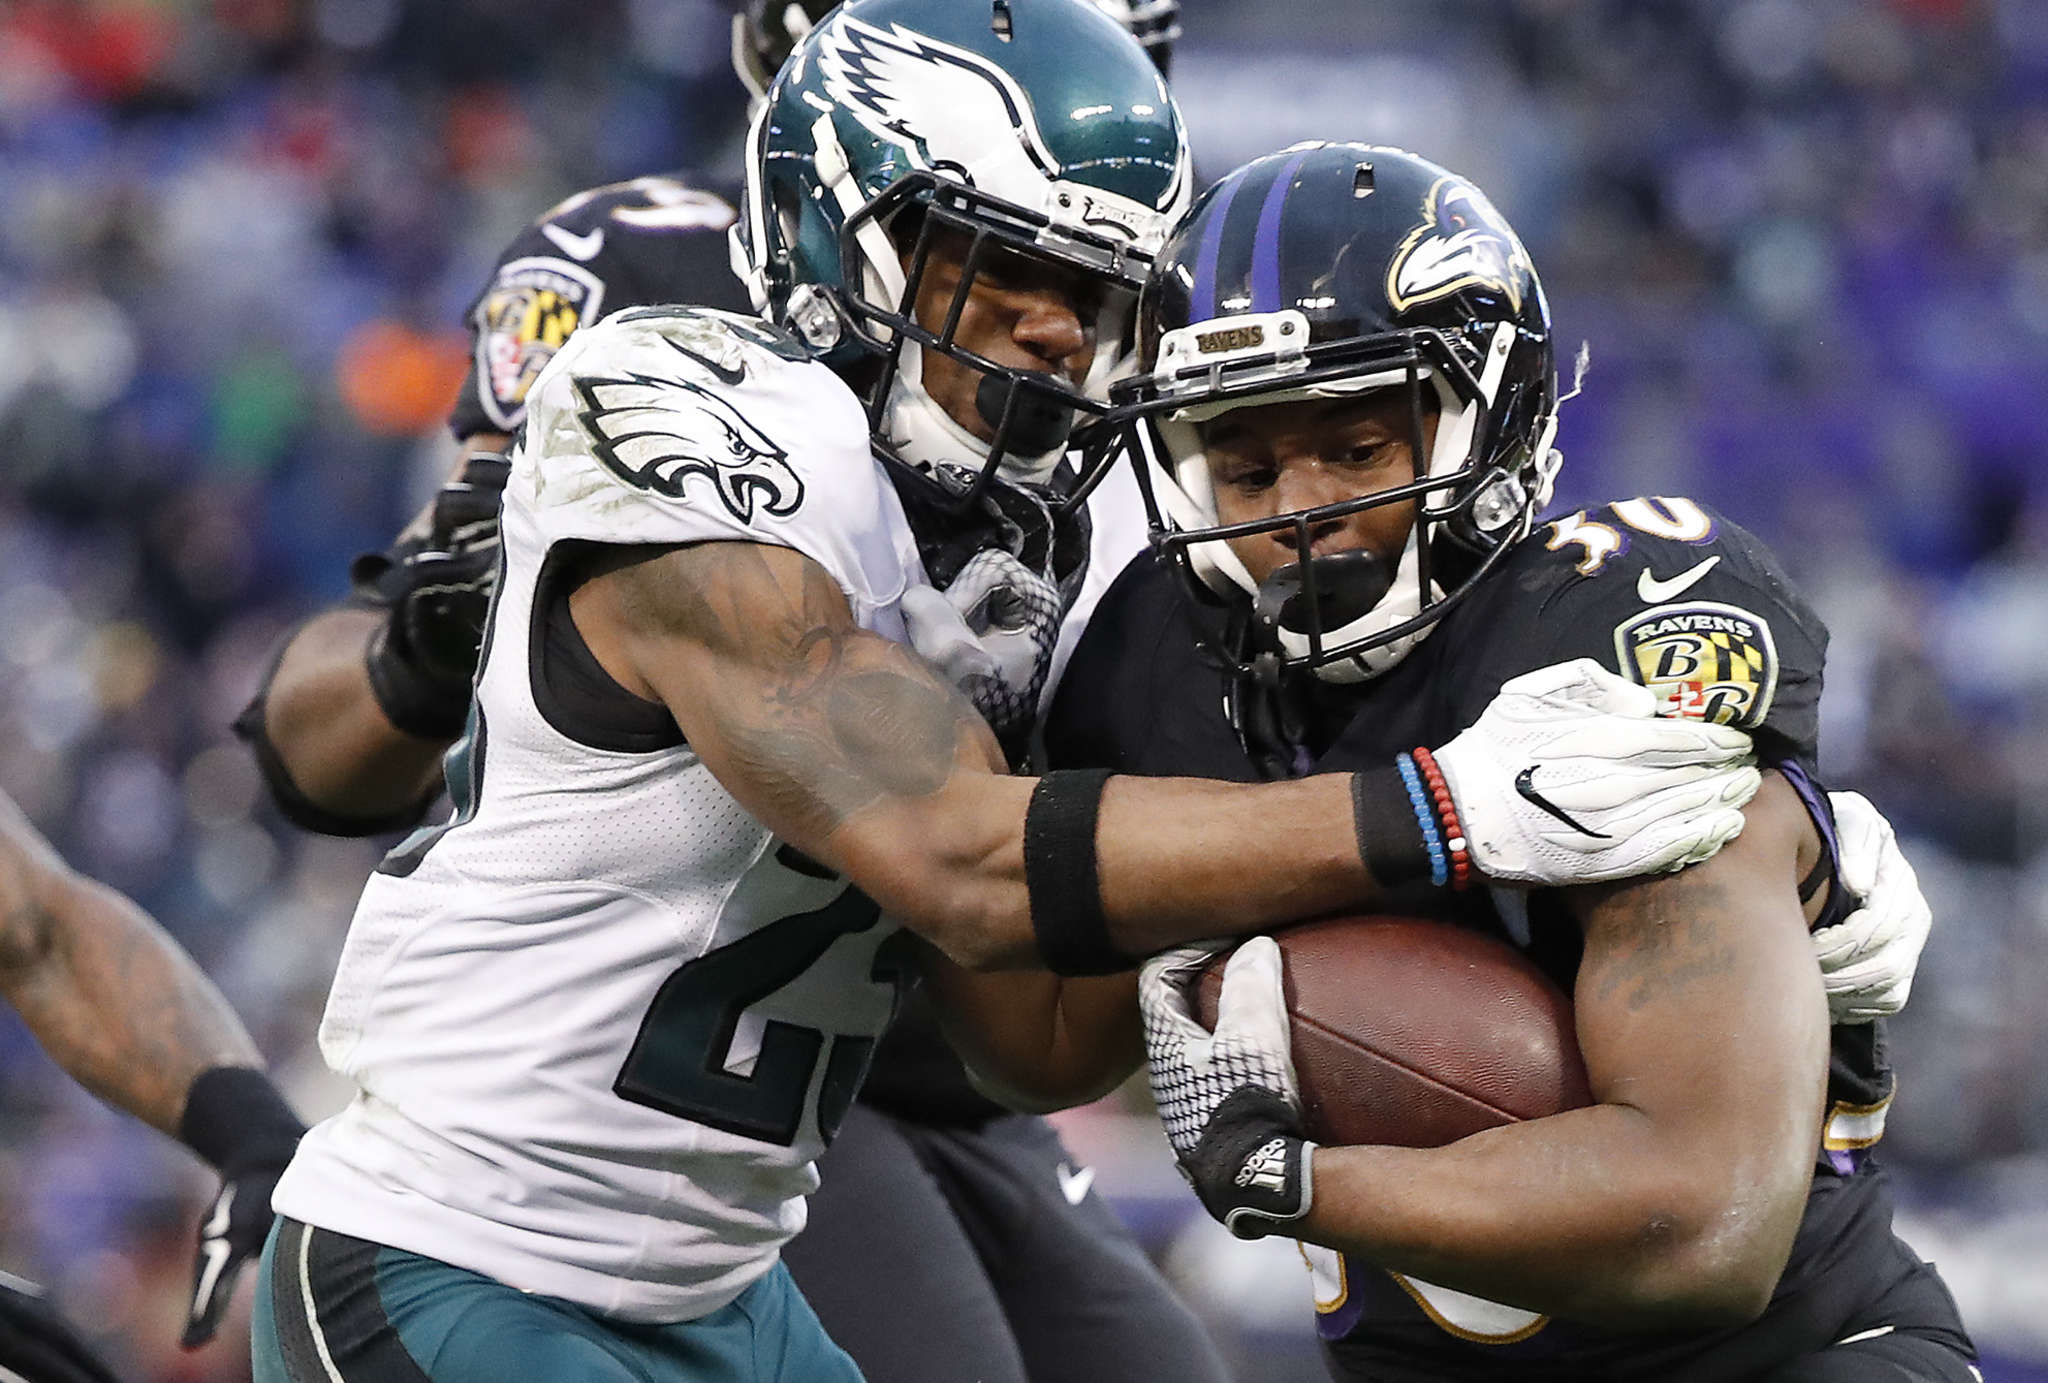 Eagles´ Rodney McLeod arrives late to Ravens´ Kenneth Dixon, who scores. DAVID MAIALETTI / Staff Photographer